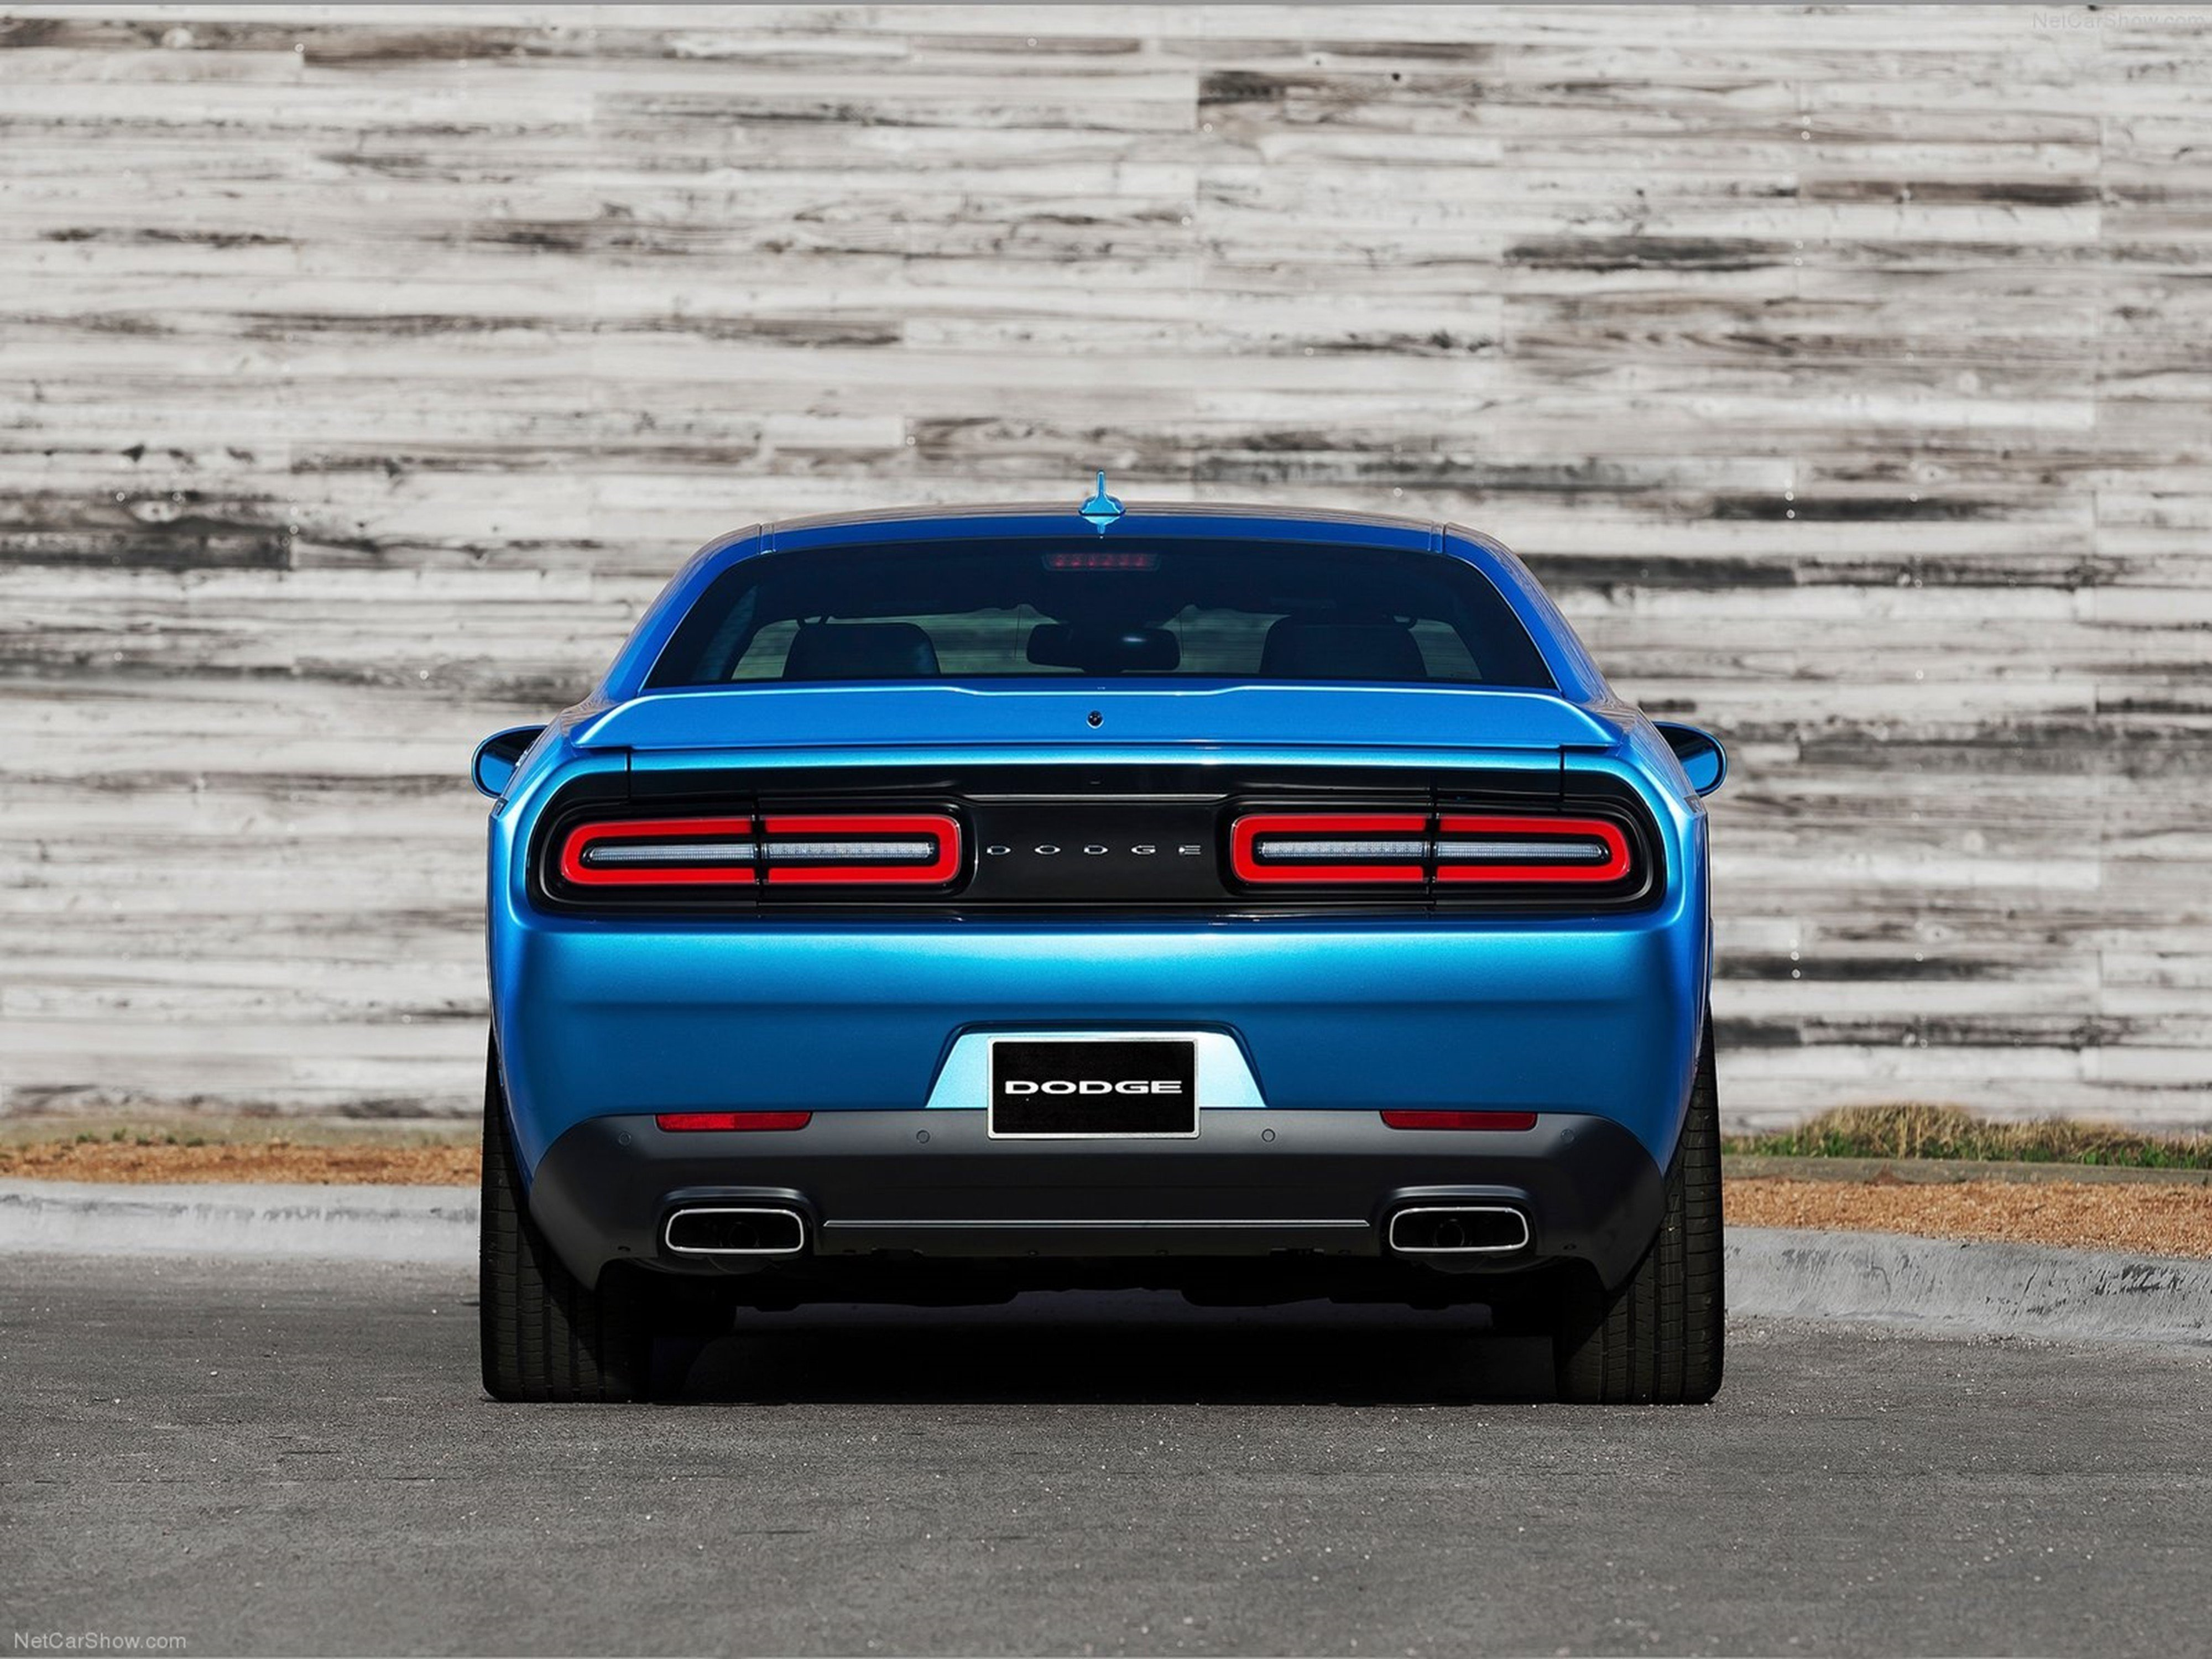 New Dodge Challenger 2015 Muscle Car Wallpaper Rear Blue On This Month